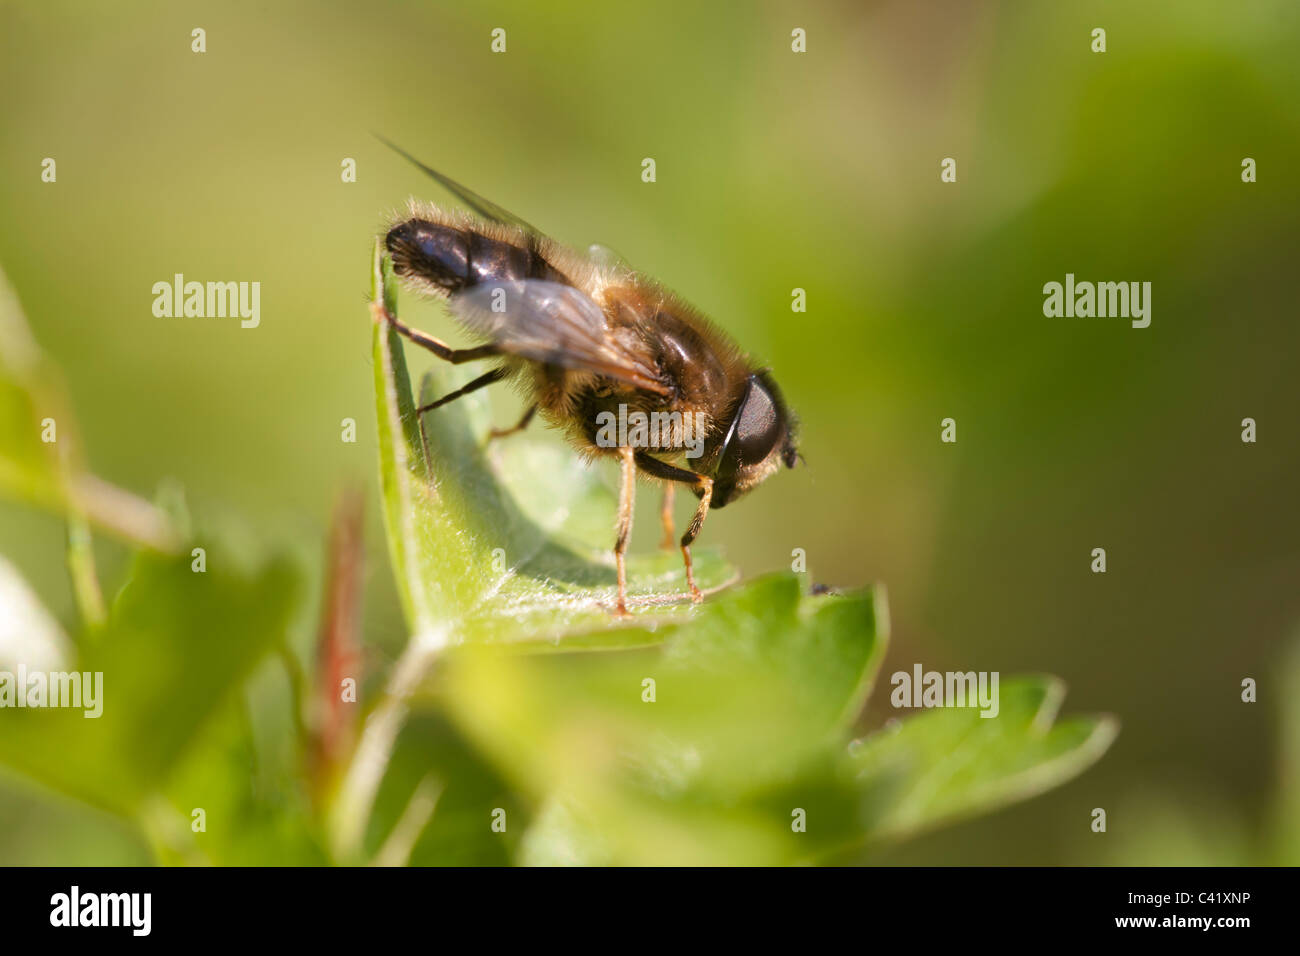 Hoverfly Eristalis tenax adult at rest on aleaf Stock Photo